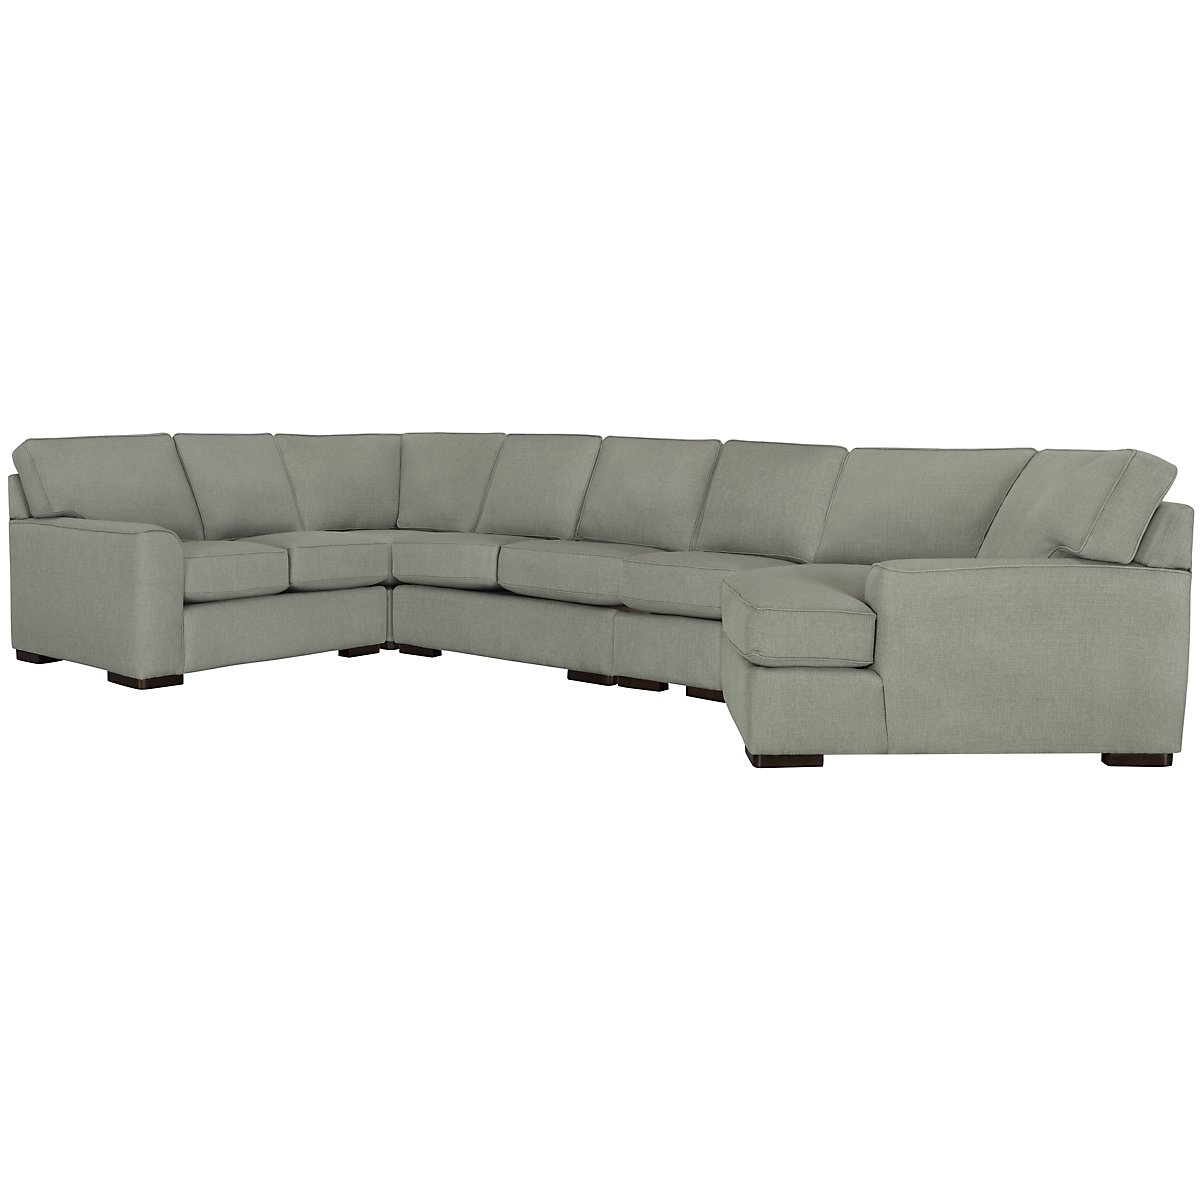 Austin Green Fabric Large Right Cuddler Sectional